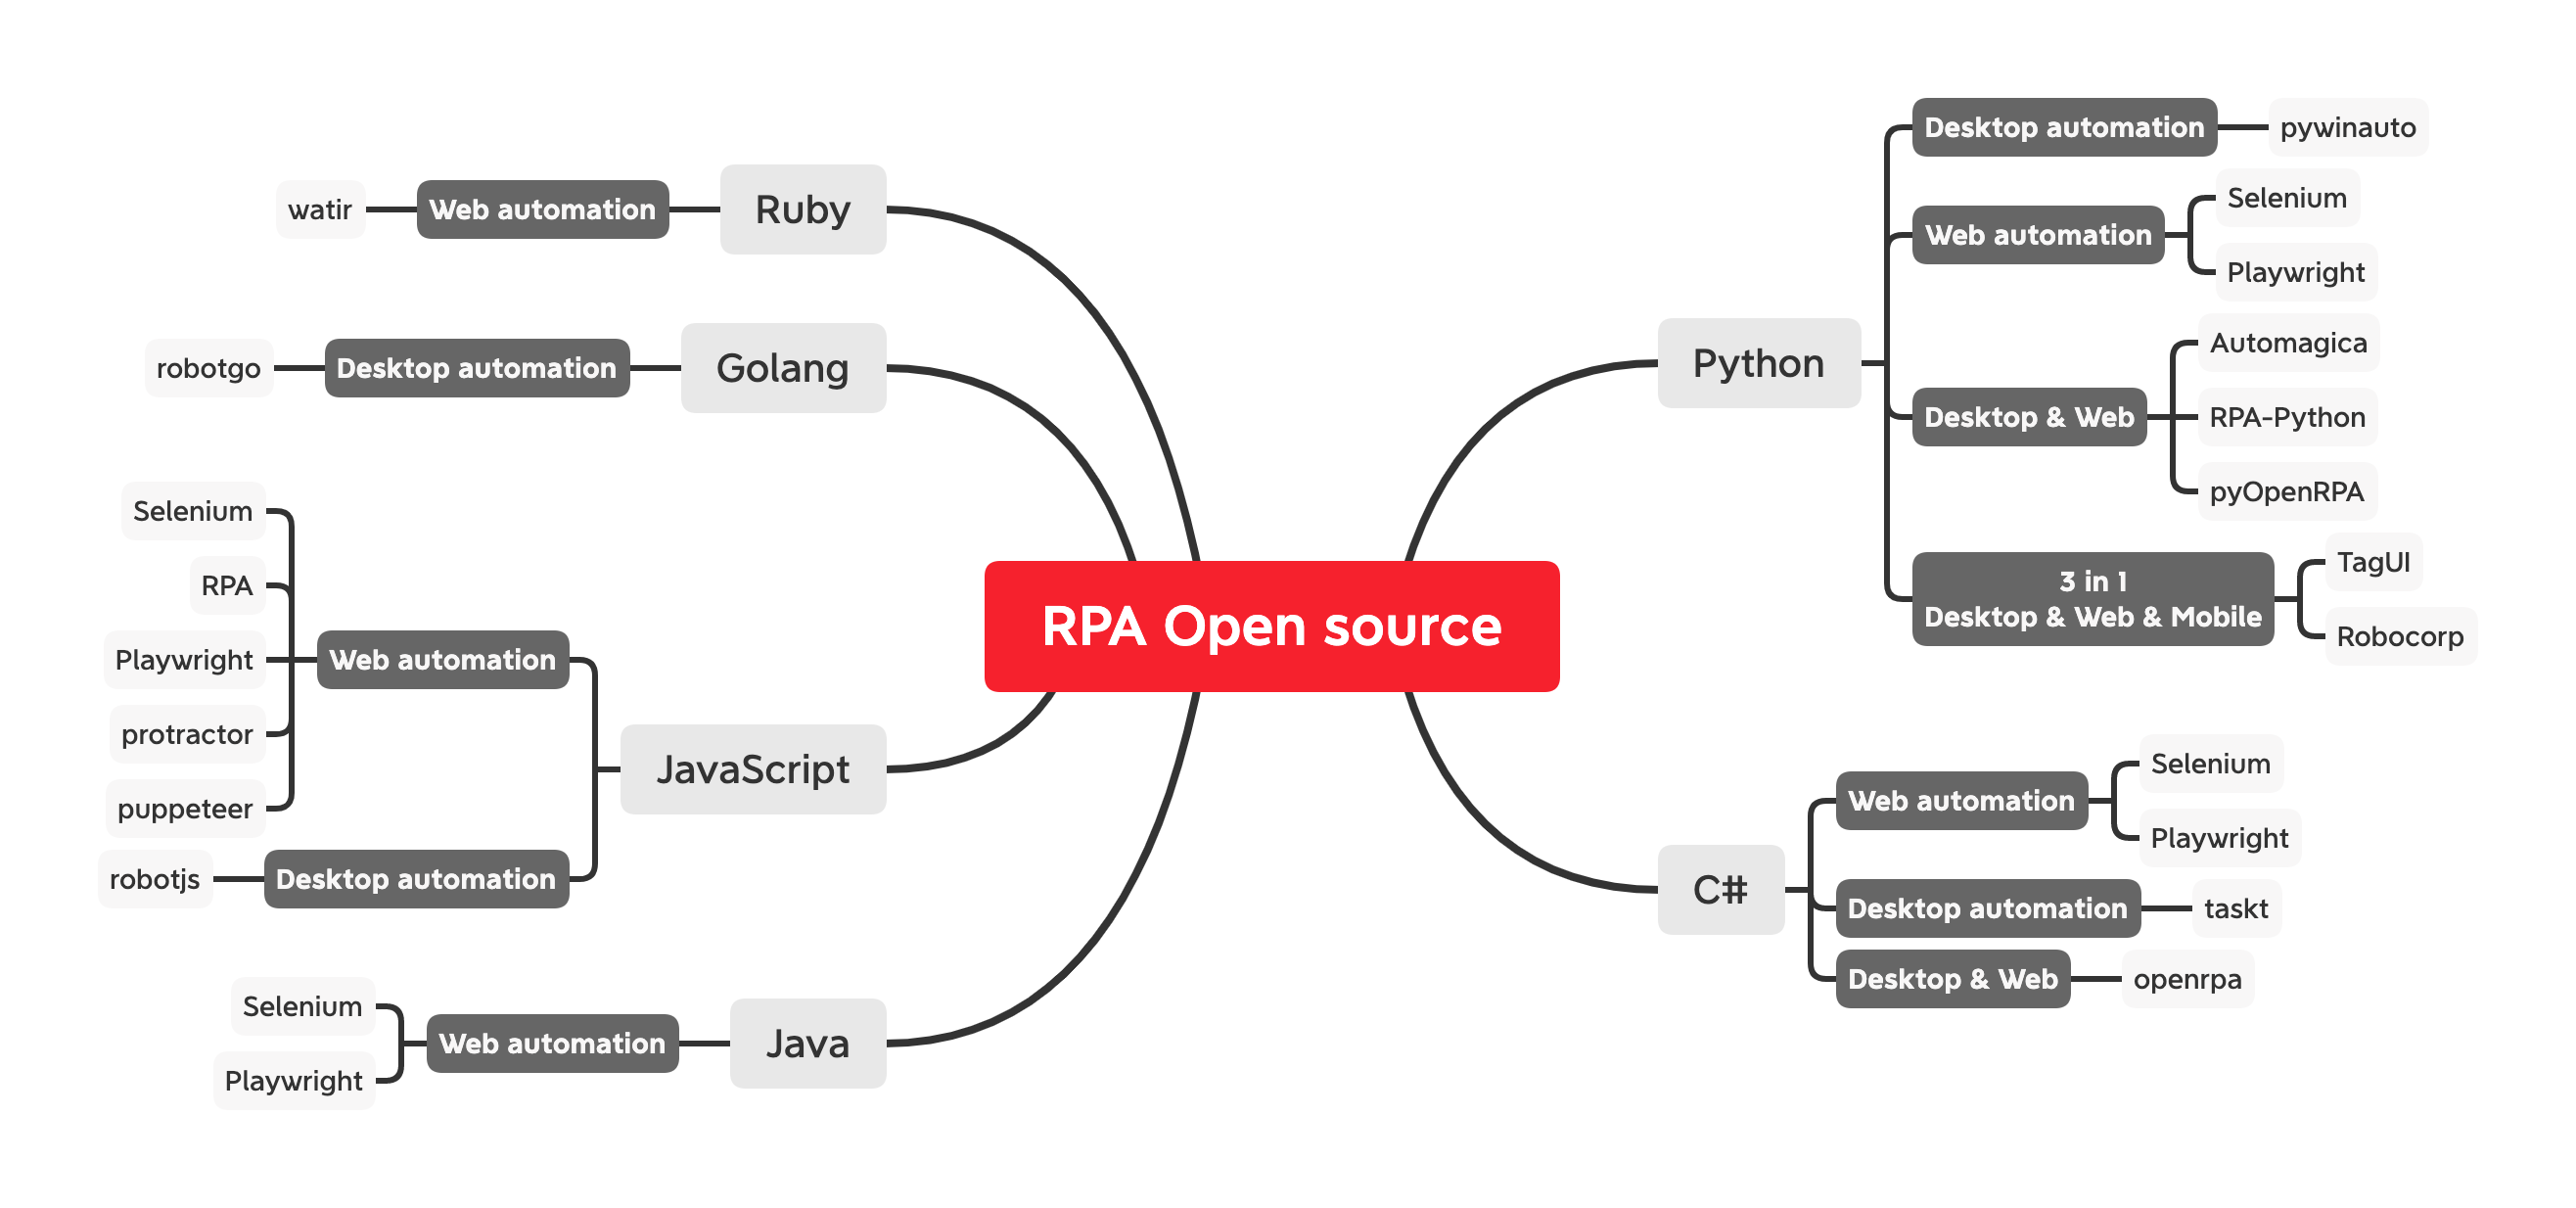 RPA open source